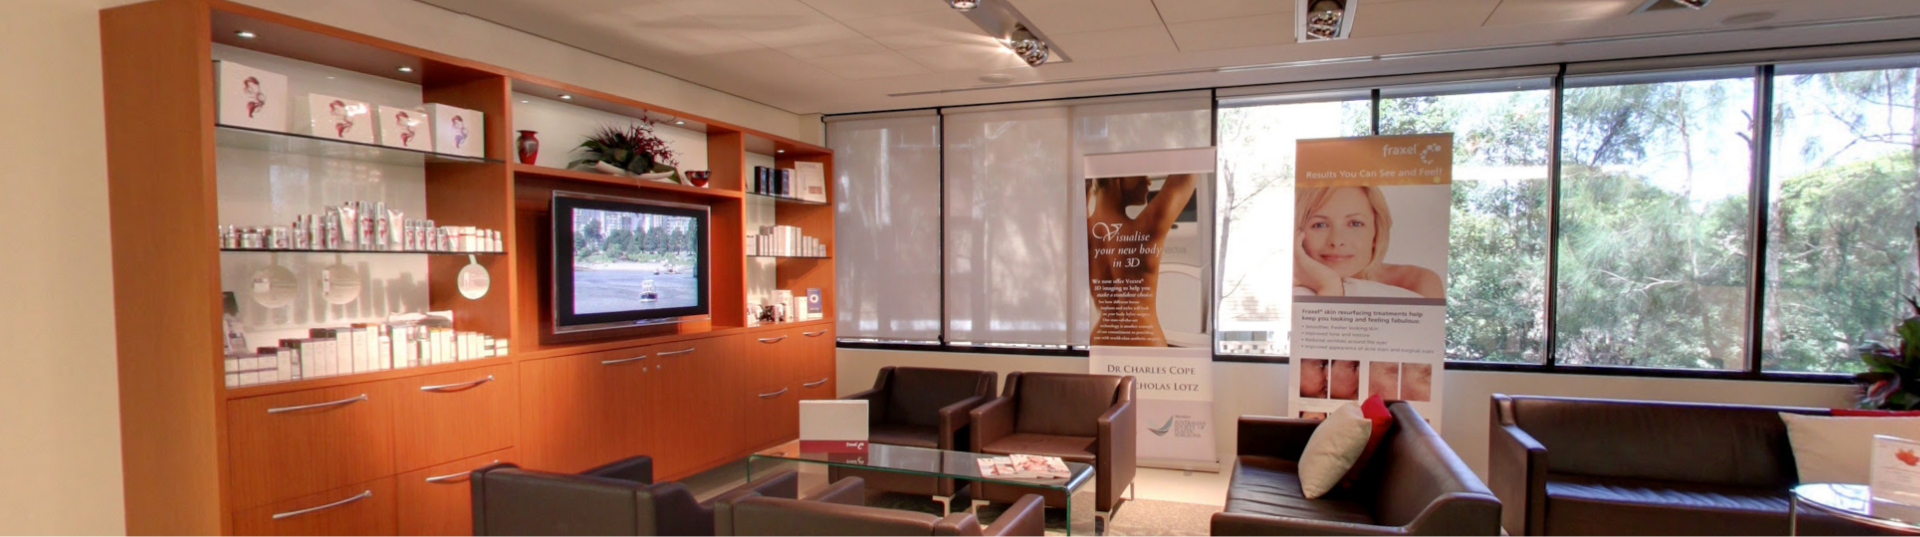 Dr Cope clinic interior 01